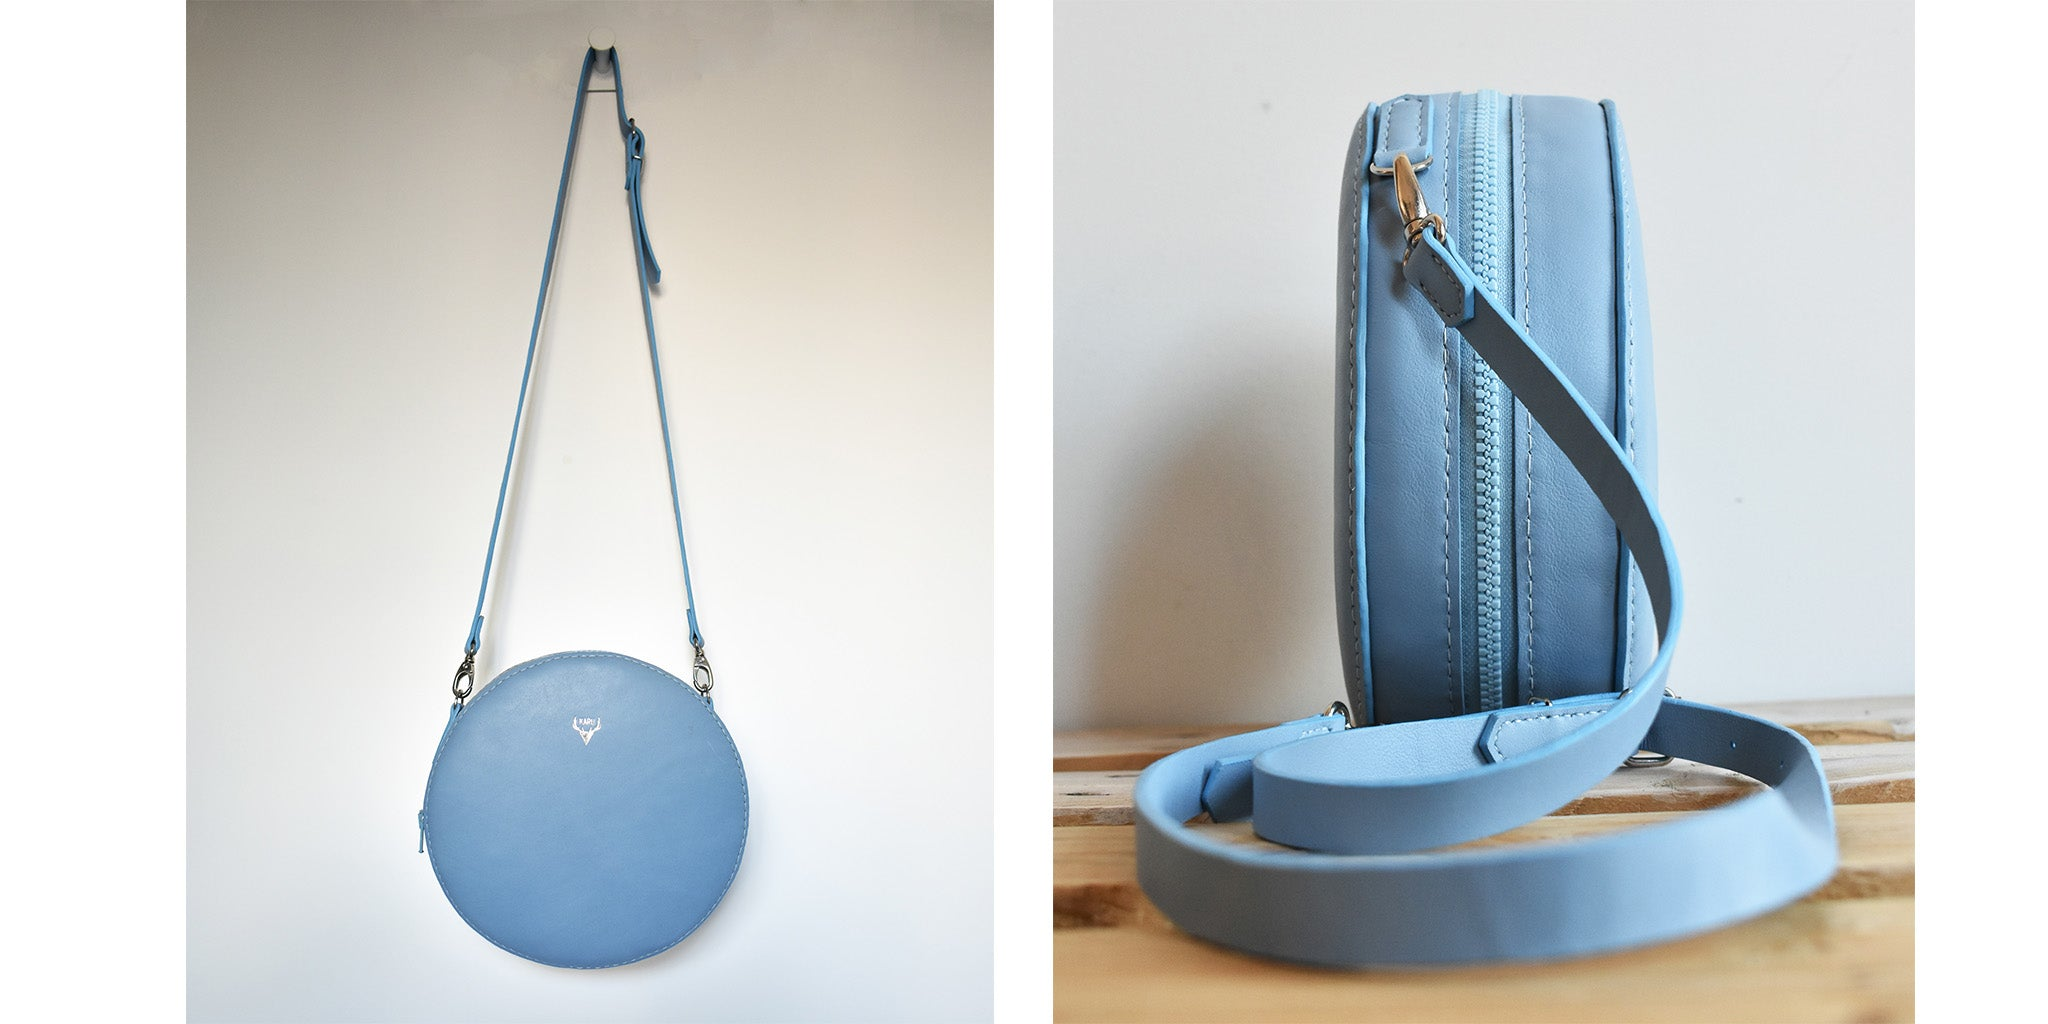 Bespoke Round Bag in baby blue calf leather | Karu Atelier